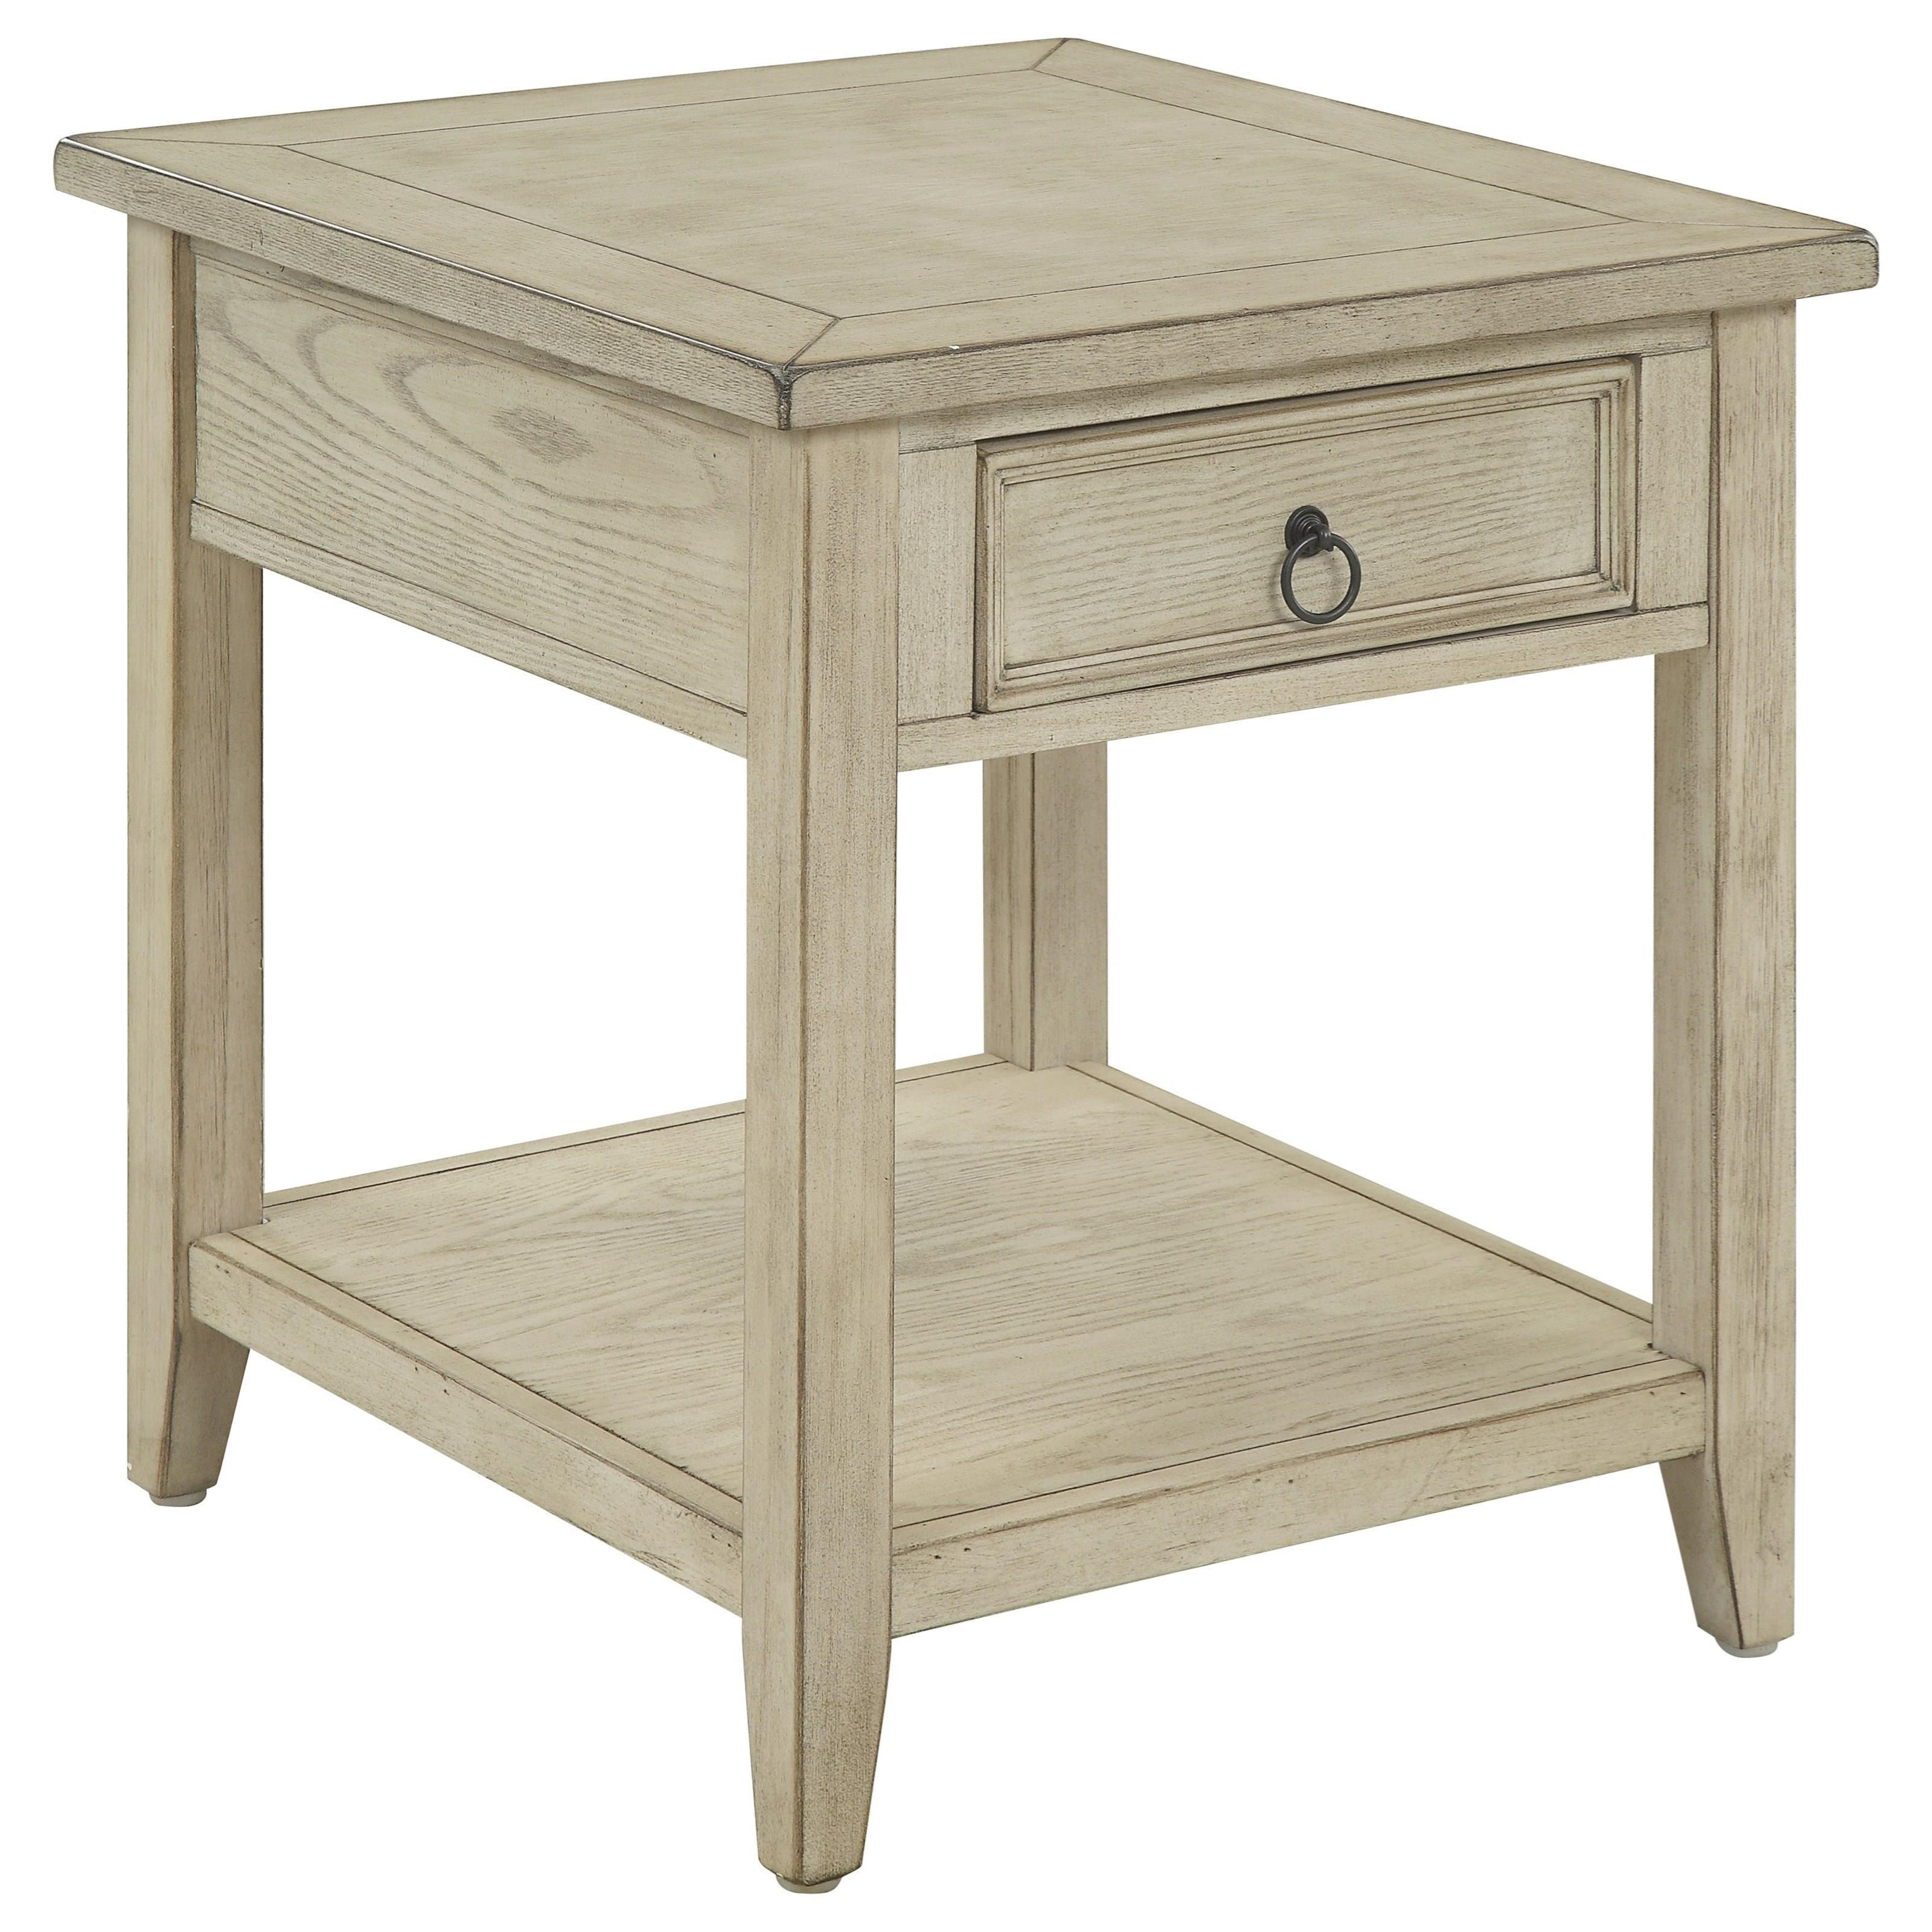 Summerville One Drawer End Table by C2C at Walker's Furniture